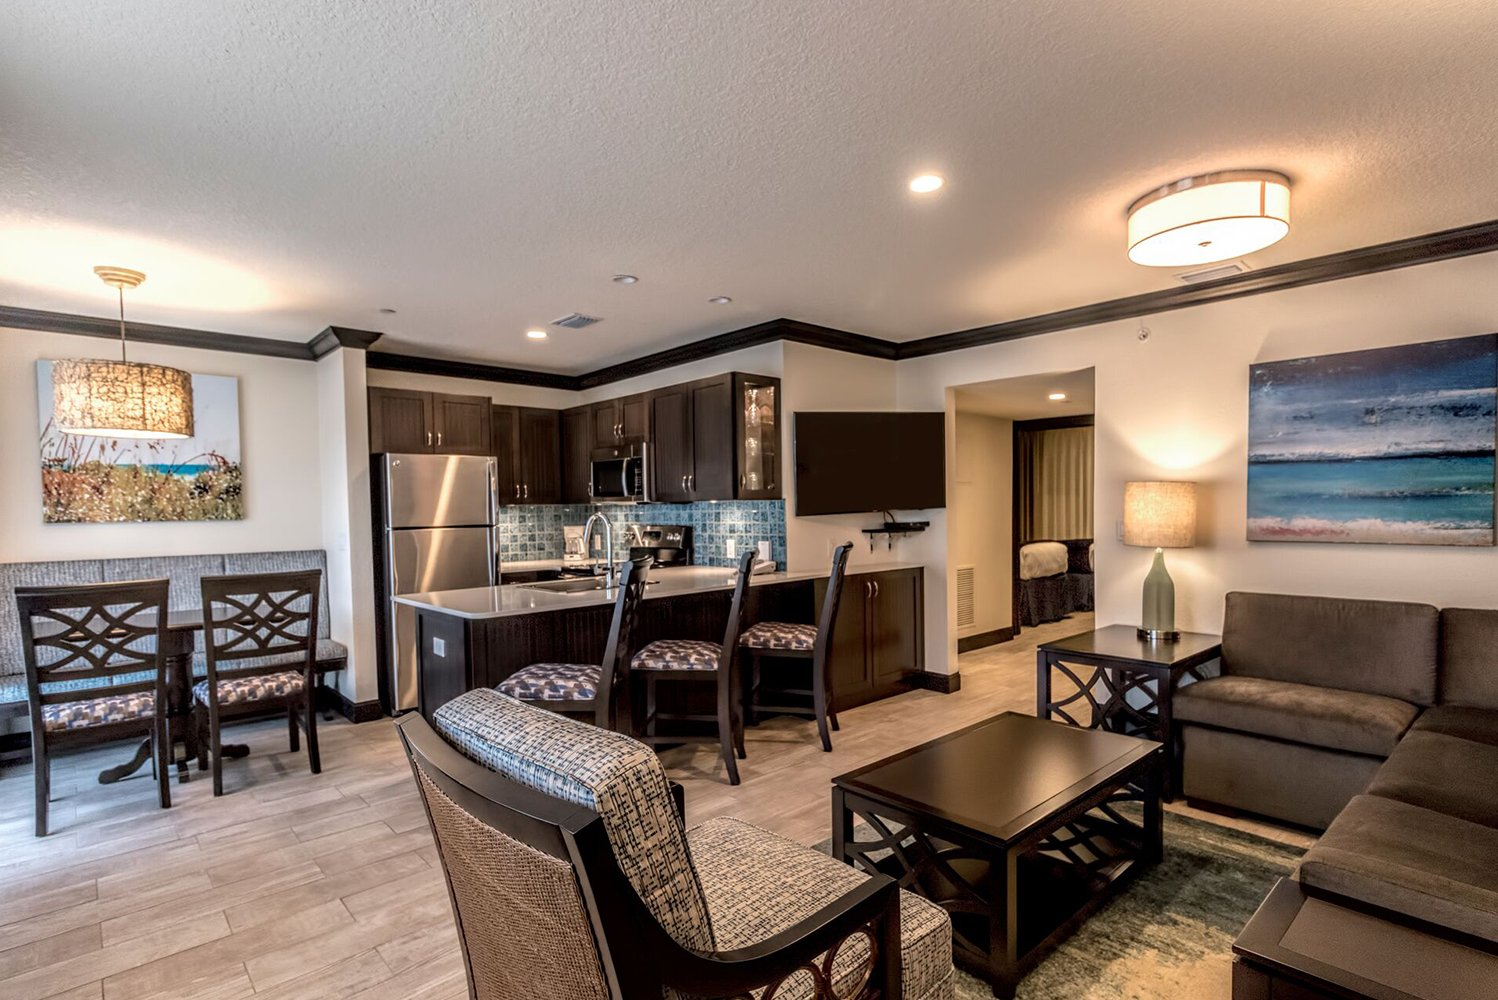 All the suites will be rebuilt from floor-to-ceiling with a modern design and high-end touches, such as stainless-steel appliances and wood finishes.